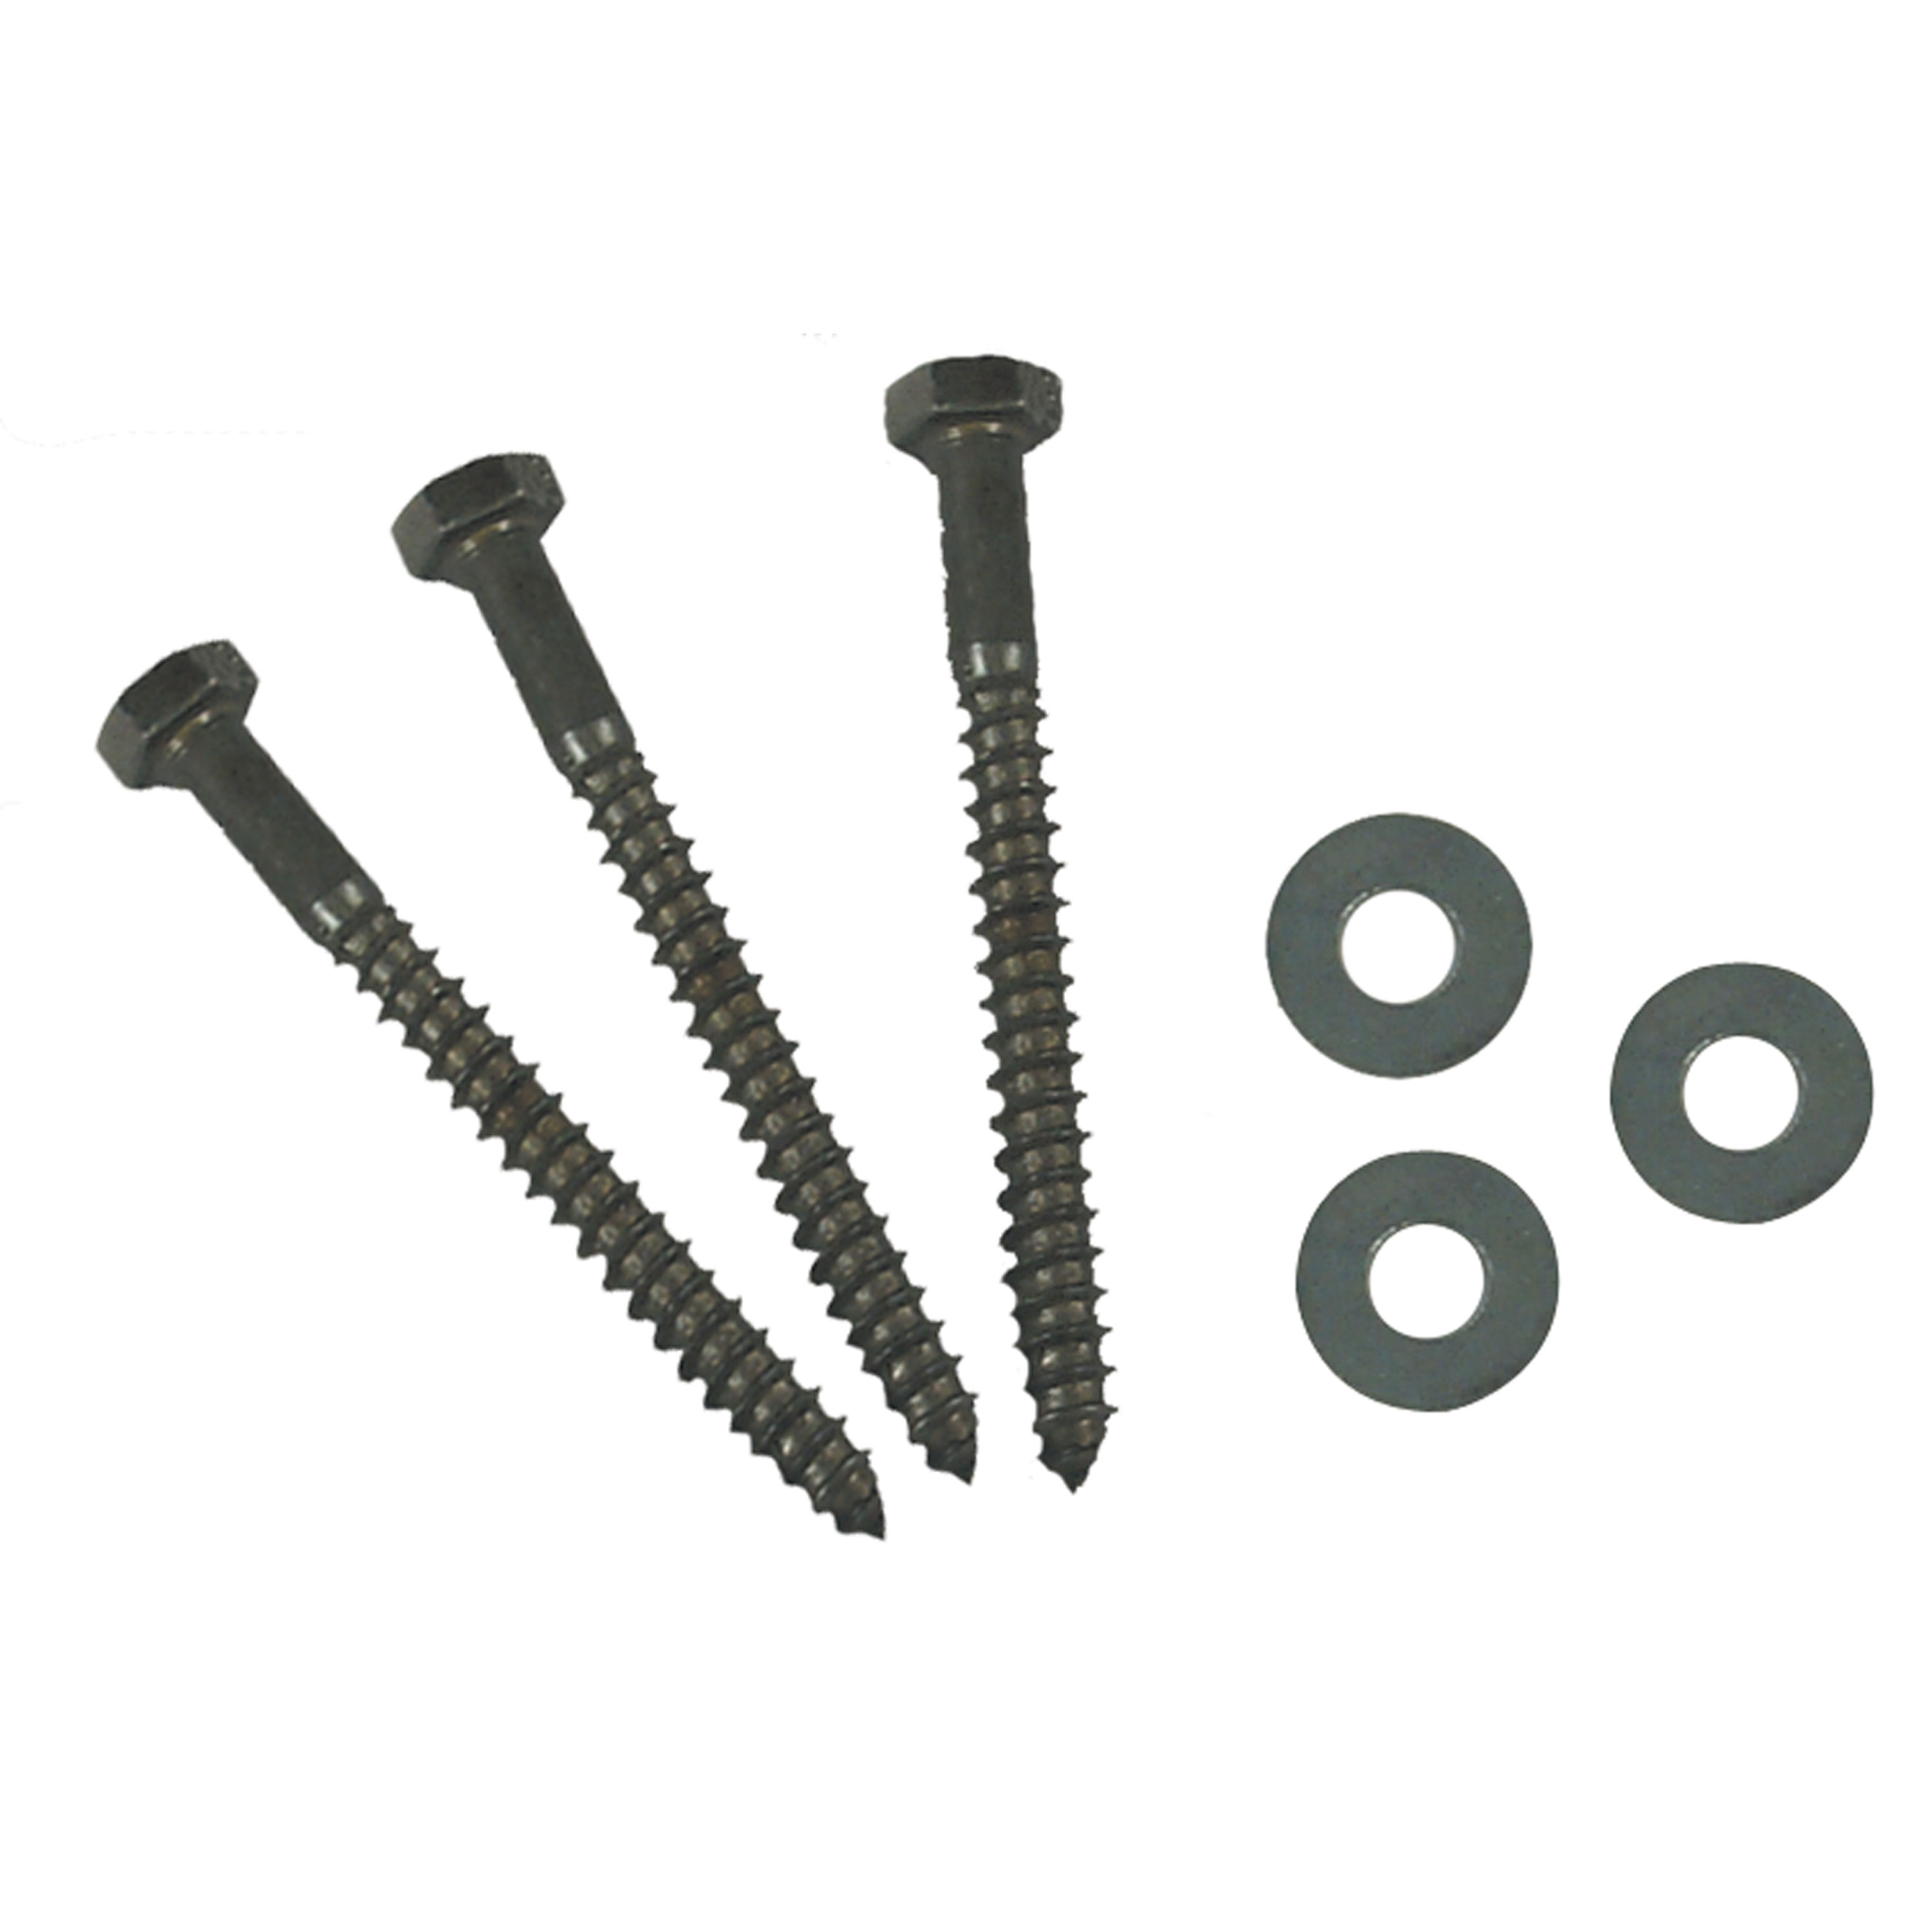 """AP Products 012-LW 25 3/8 X 4 Hex Lag Screw with Washer, Pack of 25 - 3/8"""" x 4"""""""